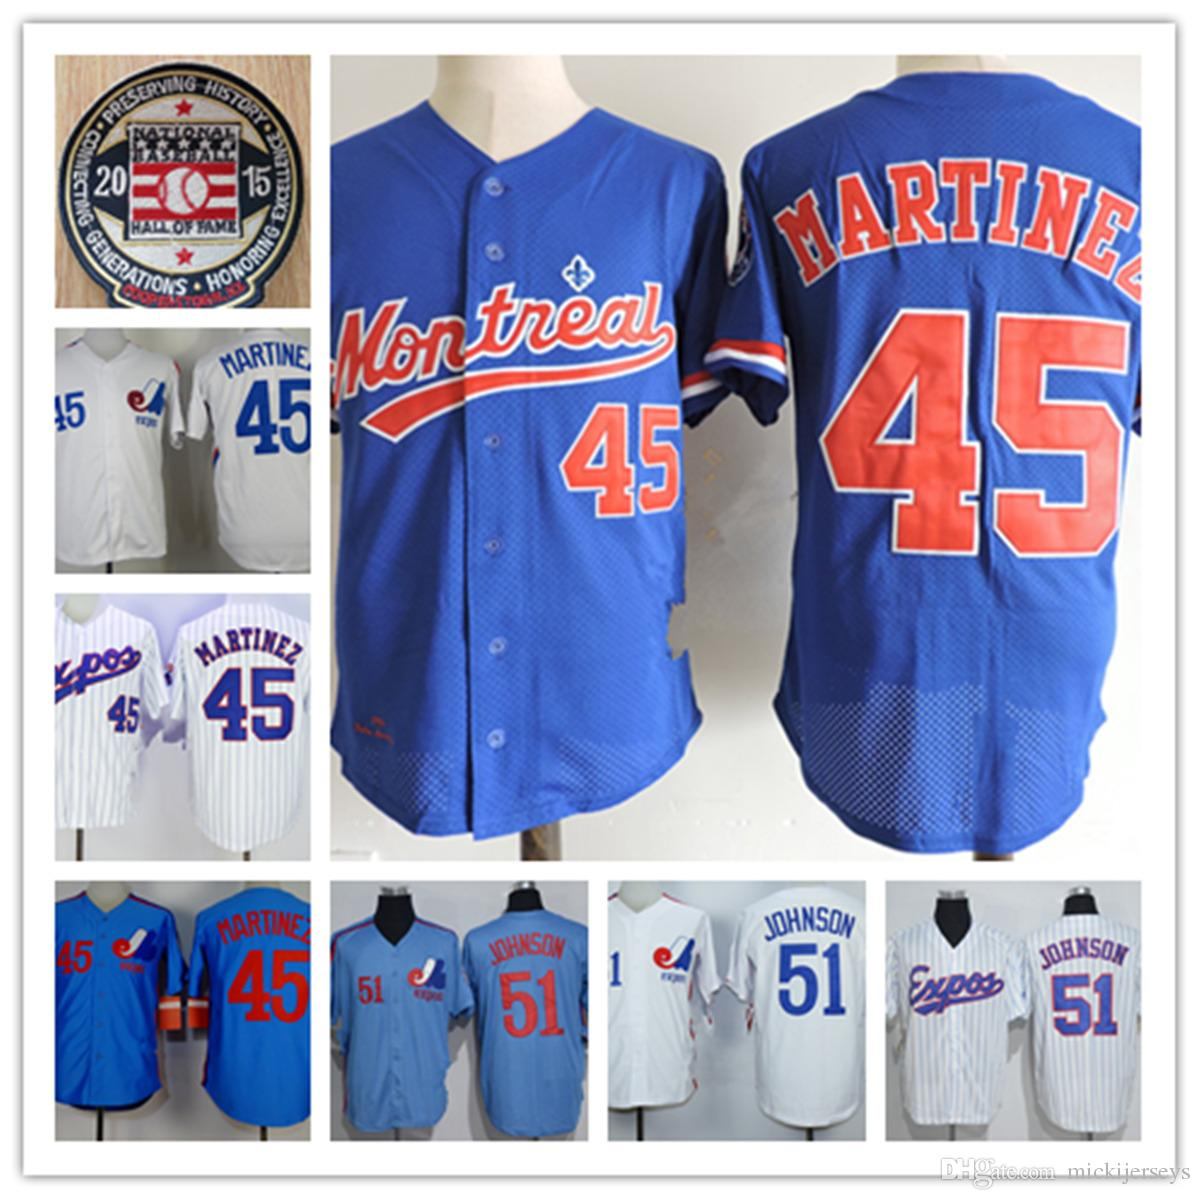 9a3b31dd9 Mens Randy Johnson Montreal Expos 1994 Vintage Jersey White blue 45 PEDRO  MARTINEZ Expos 2015 HOT patch baseball Jersey S-3XL